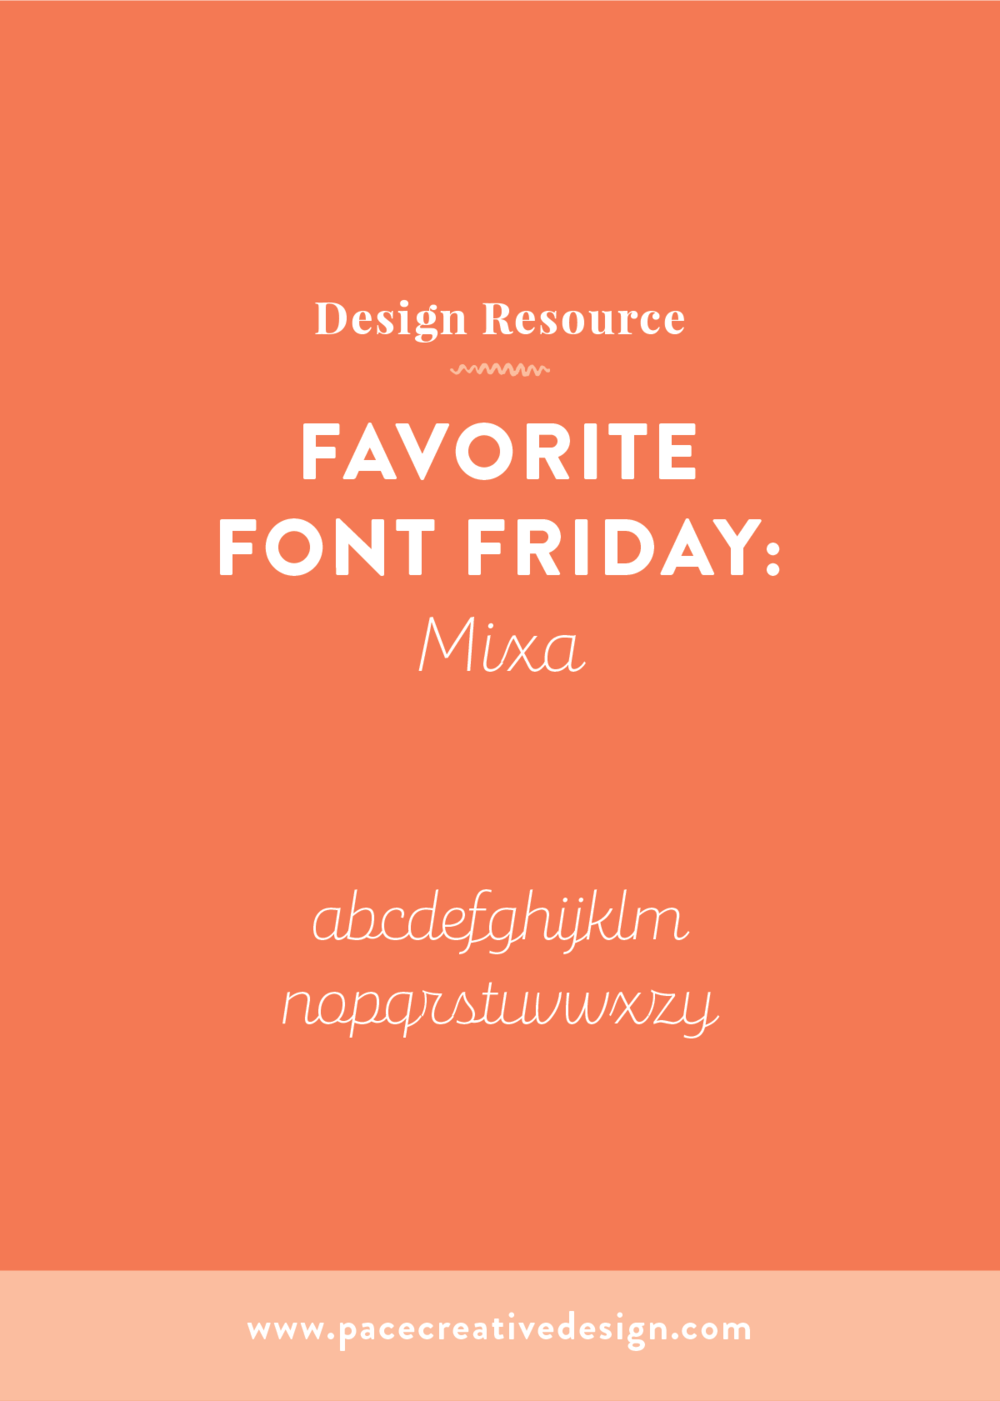 Favorite Font Friday no. 5: Mixa | Pace Creative Design Studio